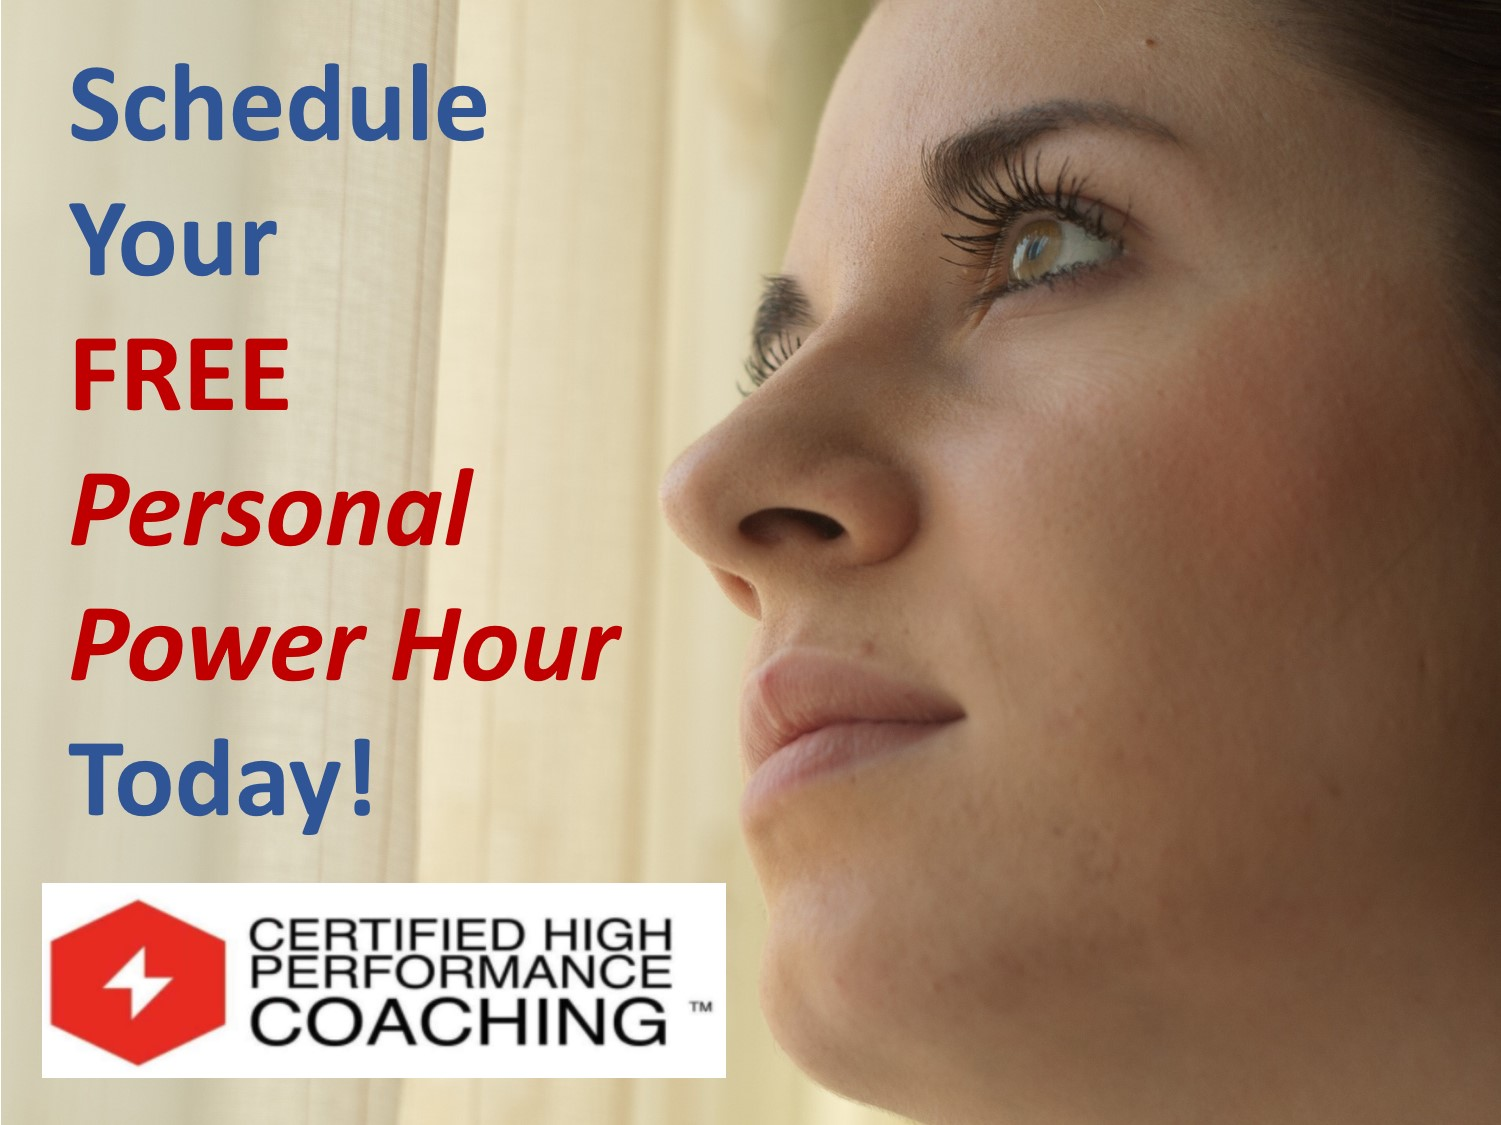 Schedule Your Personal Power Hour Today